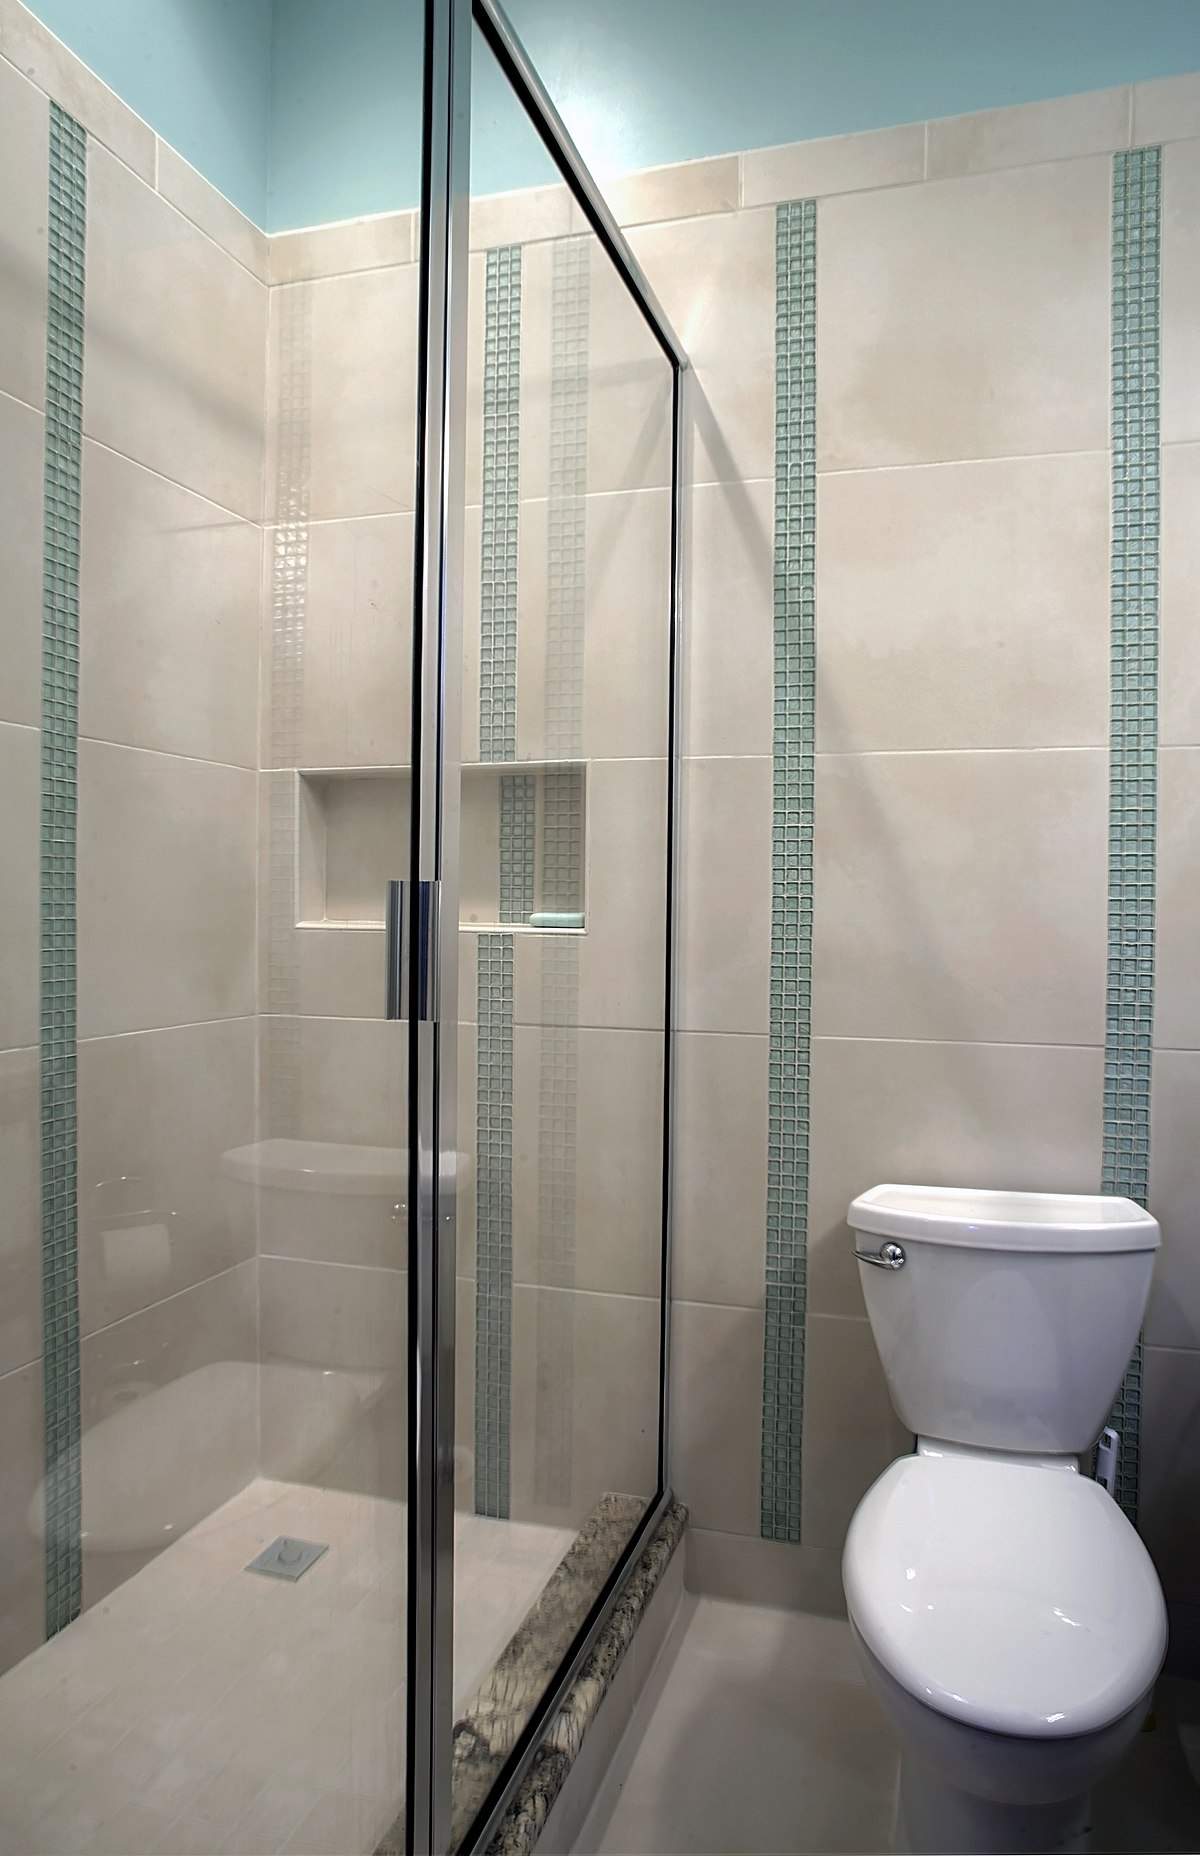 Bathroom Wikipedia - Small bathroom shower ideas for small bathroom ideas